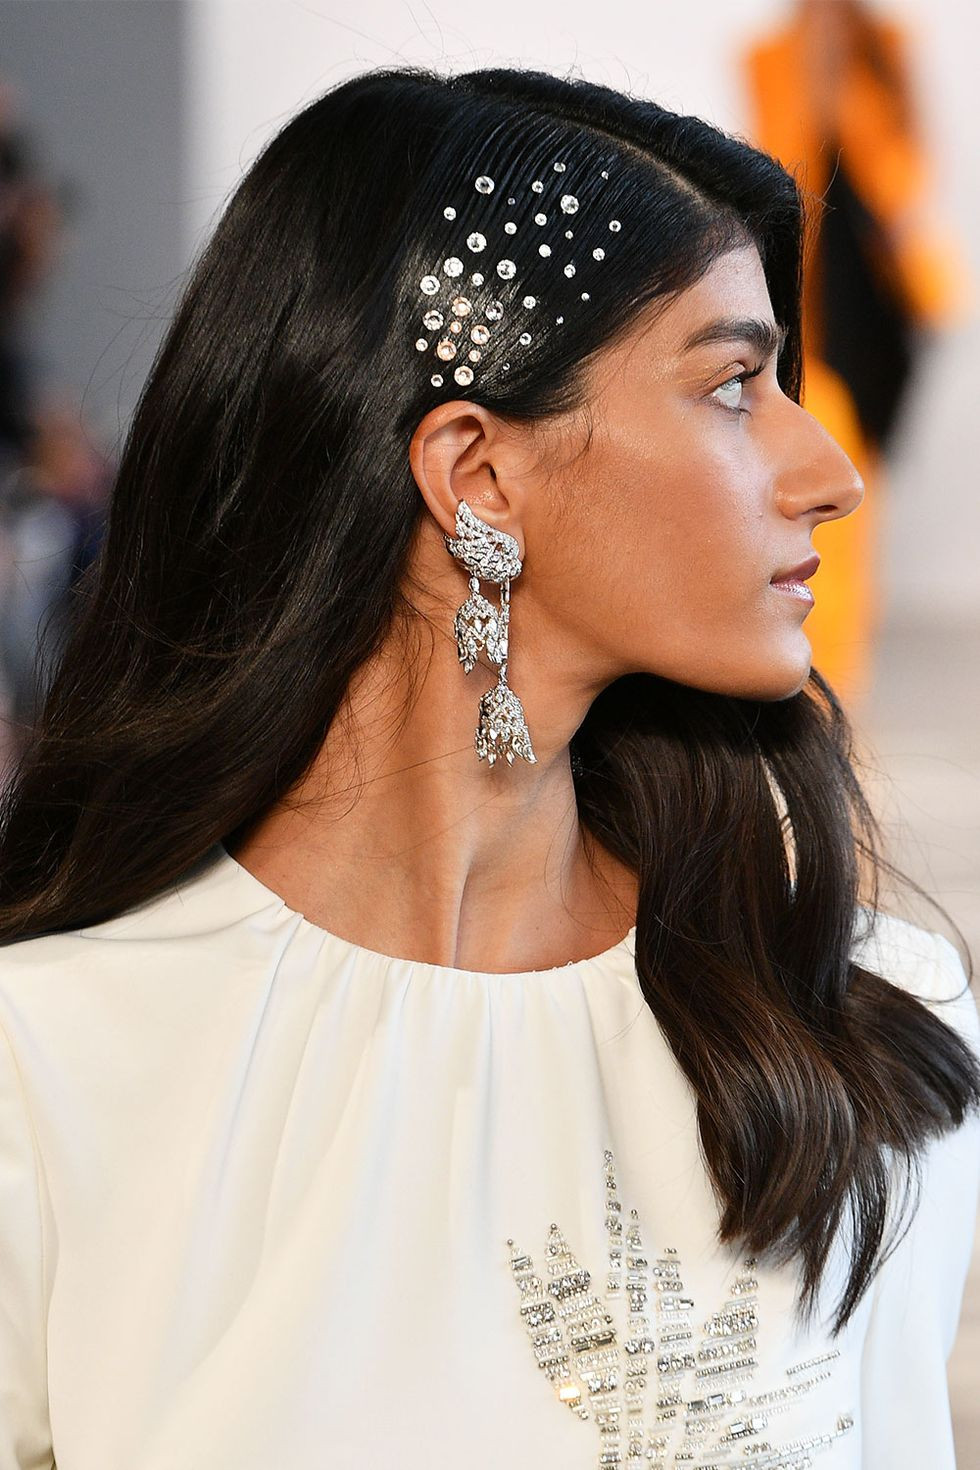 Bibhu Mohapatras Spring Summer 2020 runway collection - Hair Jewels - Hair Blog Australia